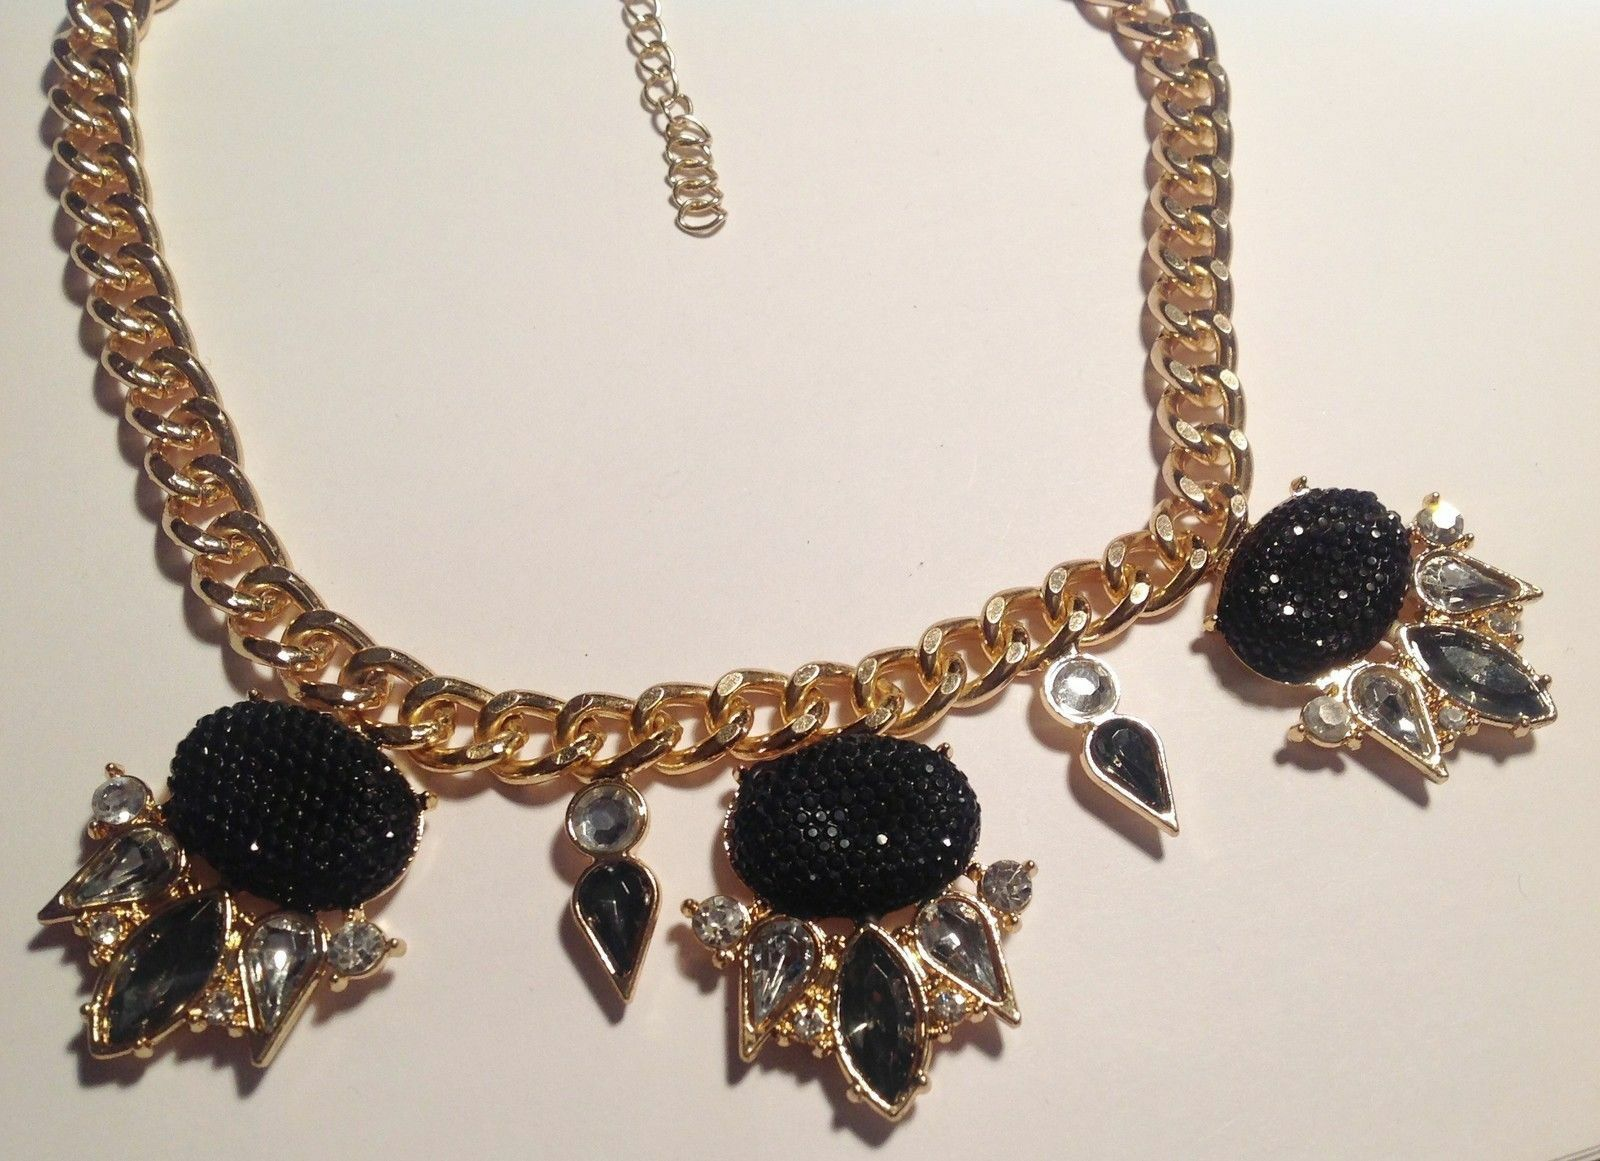 Collier moderne moderne moderne maille gourmette Colore or déco strass cabochon nero 4419 ba8864